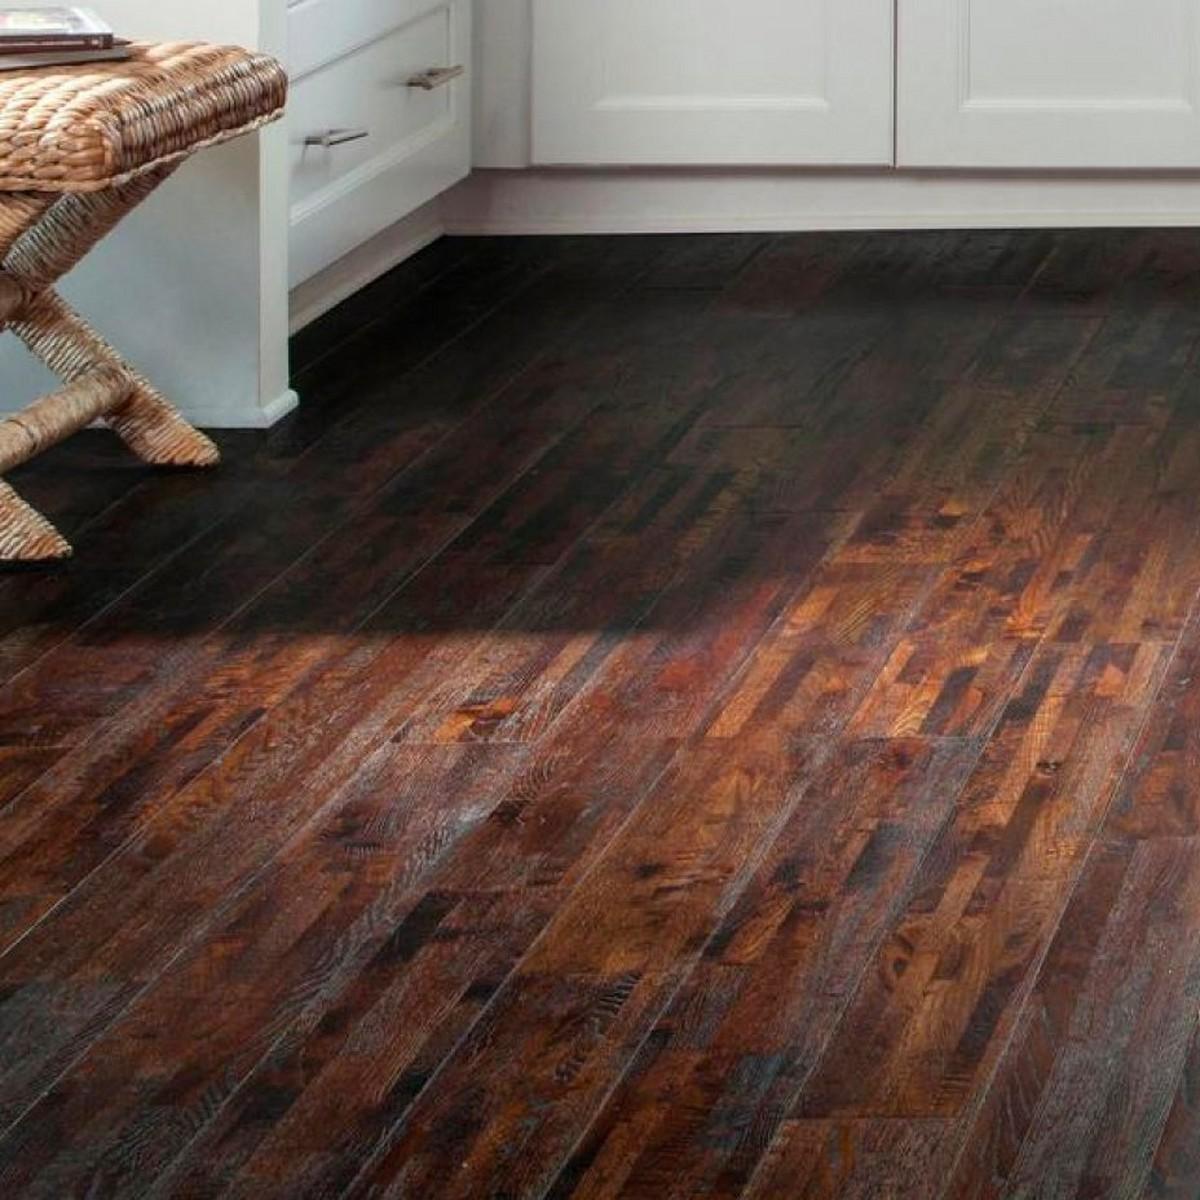 Can You Use Vinegar On Wood Floors: 20 Things You Should Never Use Vinegar For